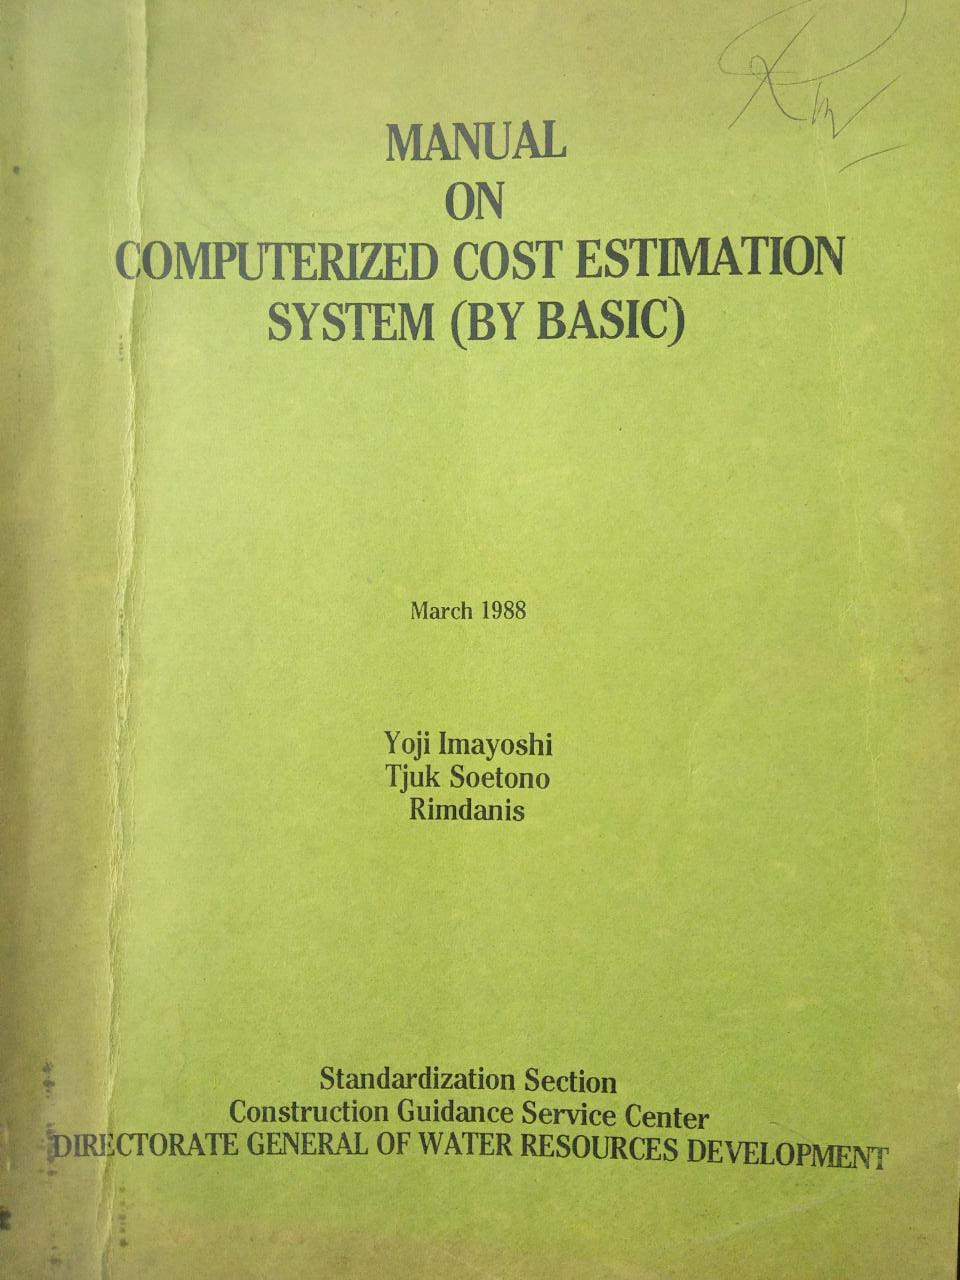 MANUAL ON COMPUTERIZED COST ESTIMATION SYSTEM (BY BASIC)